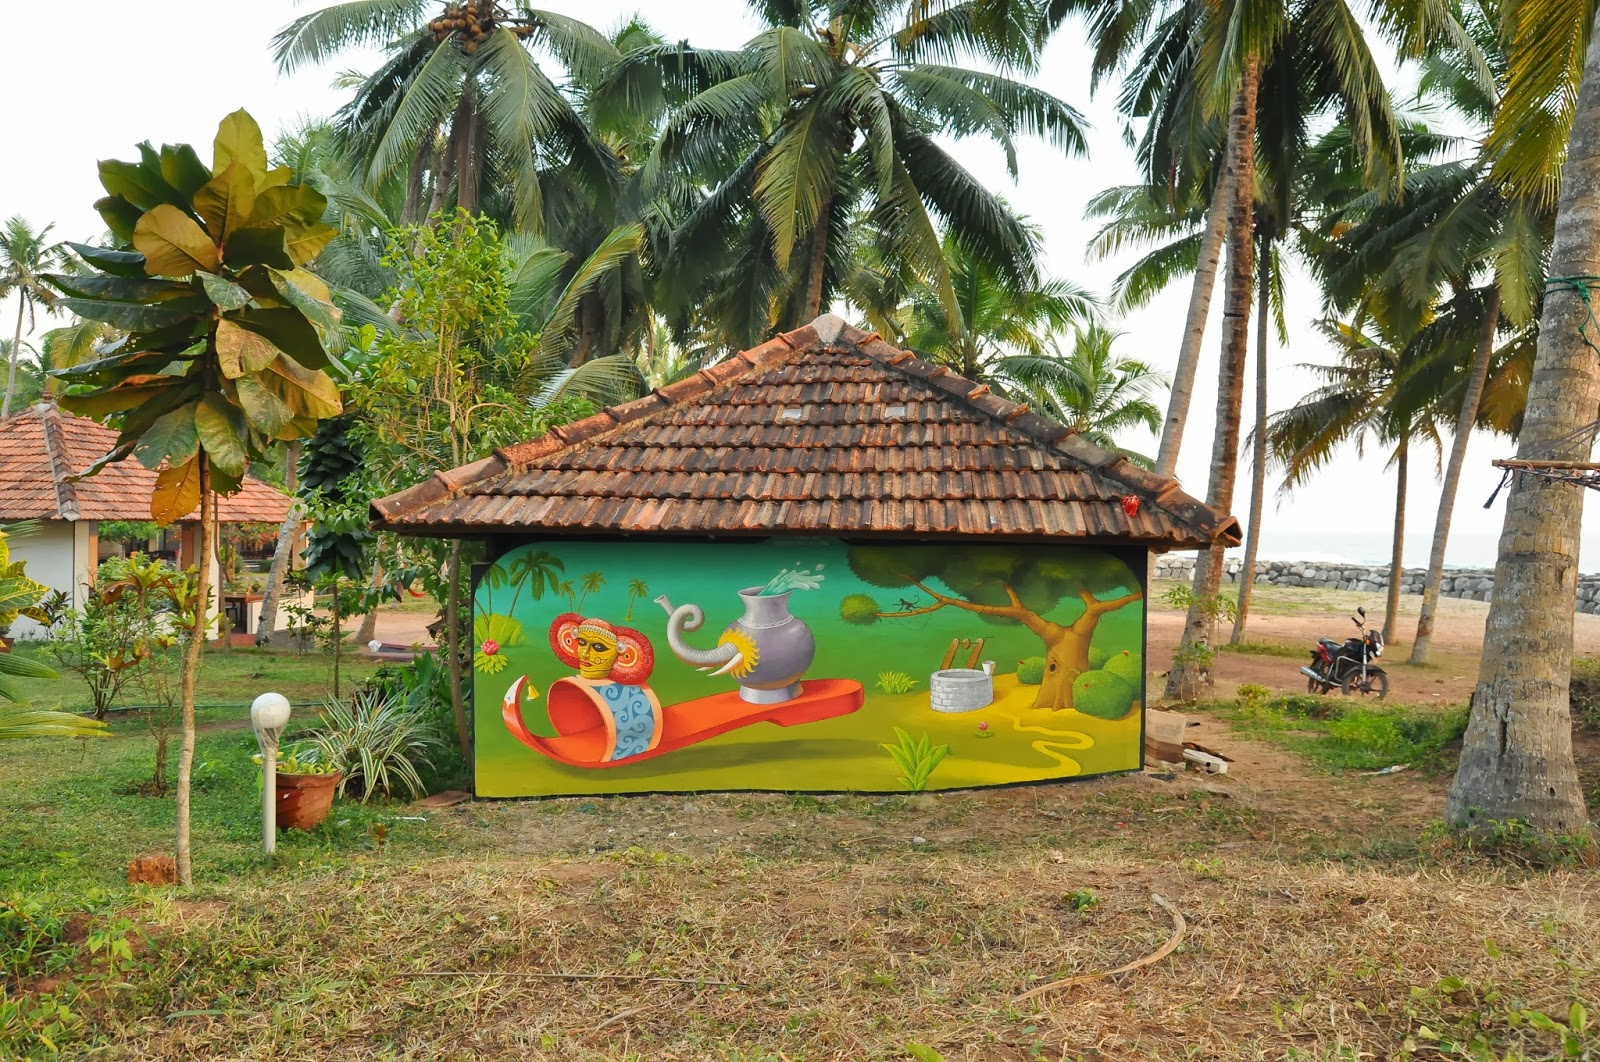 interesni-kazki-holy-slipper-new-mural-in-india-05